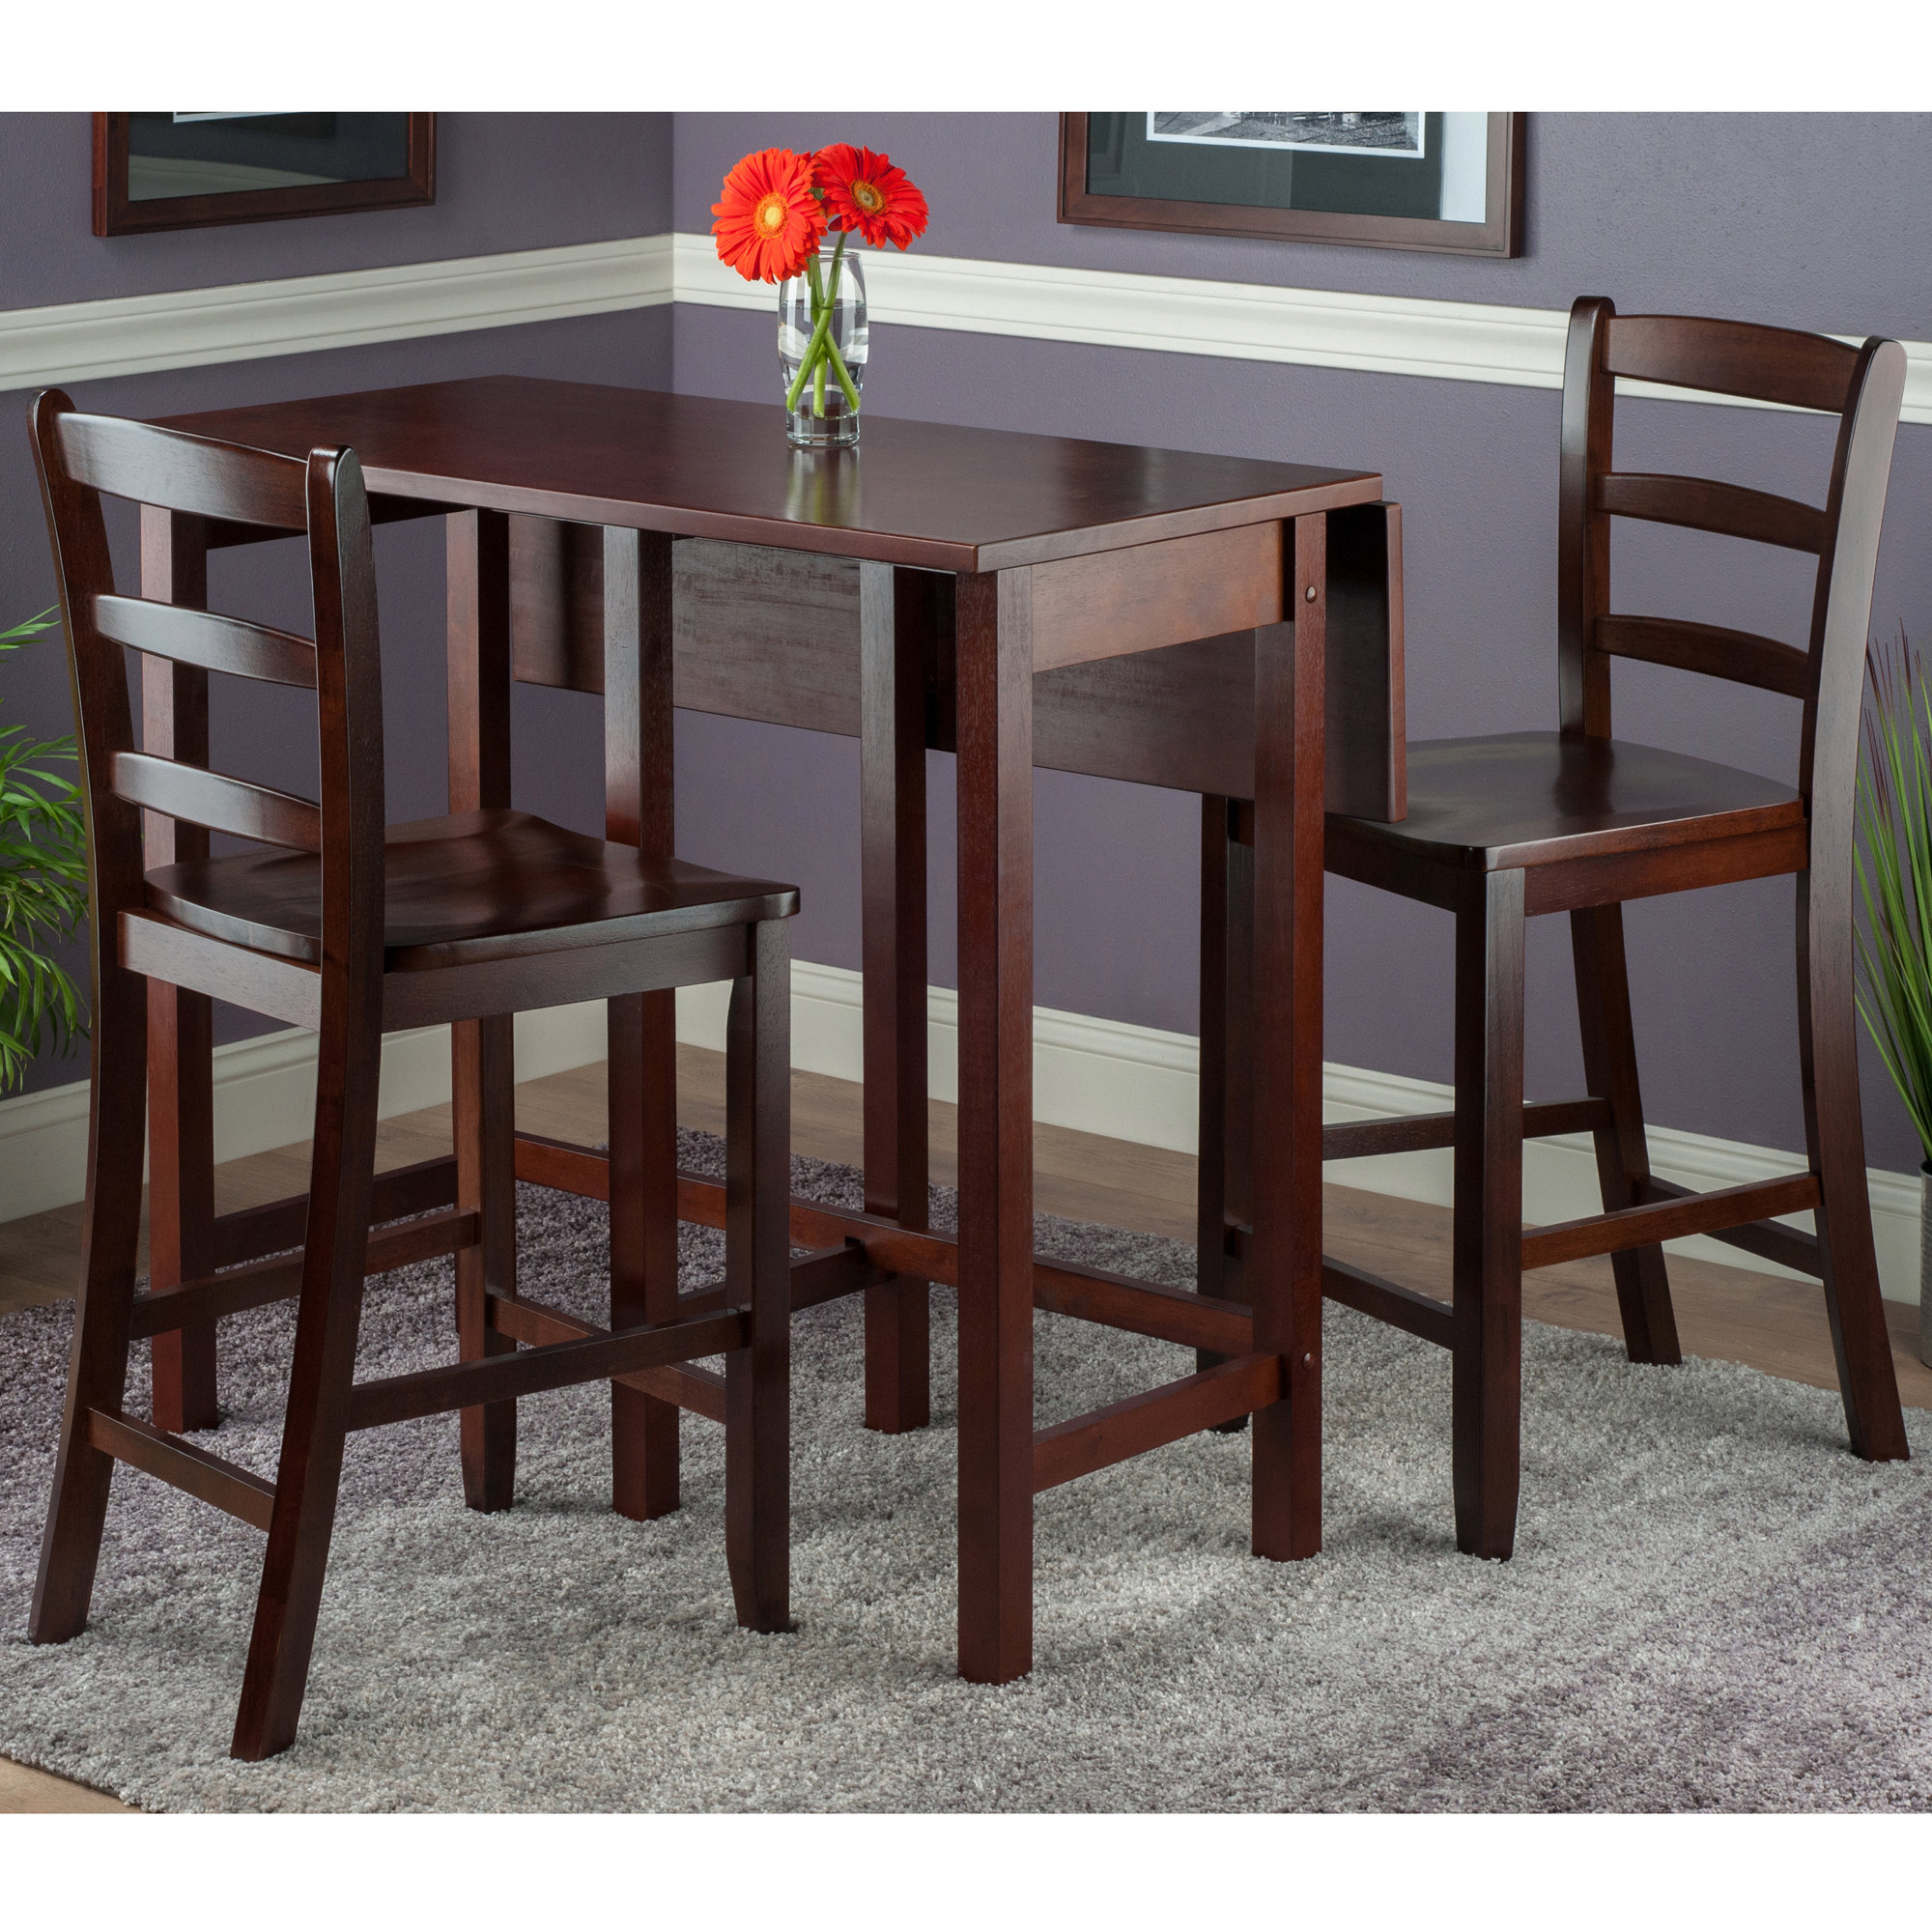 Preferred Bettencourt 3 Piece Drop Leaf Dining Set For Bettencourt 3 Piece Counter Height Solid Wood Dining Sets (View 17 of 20)